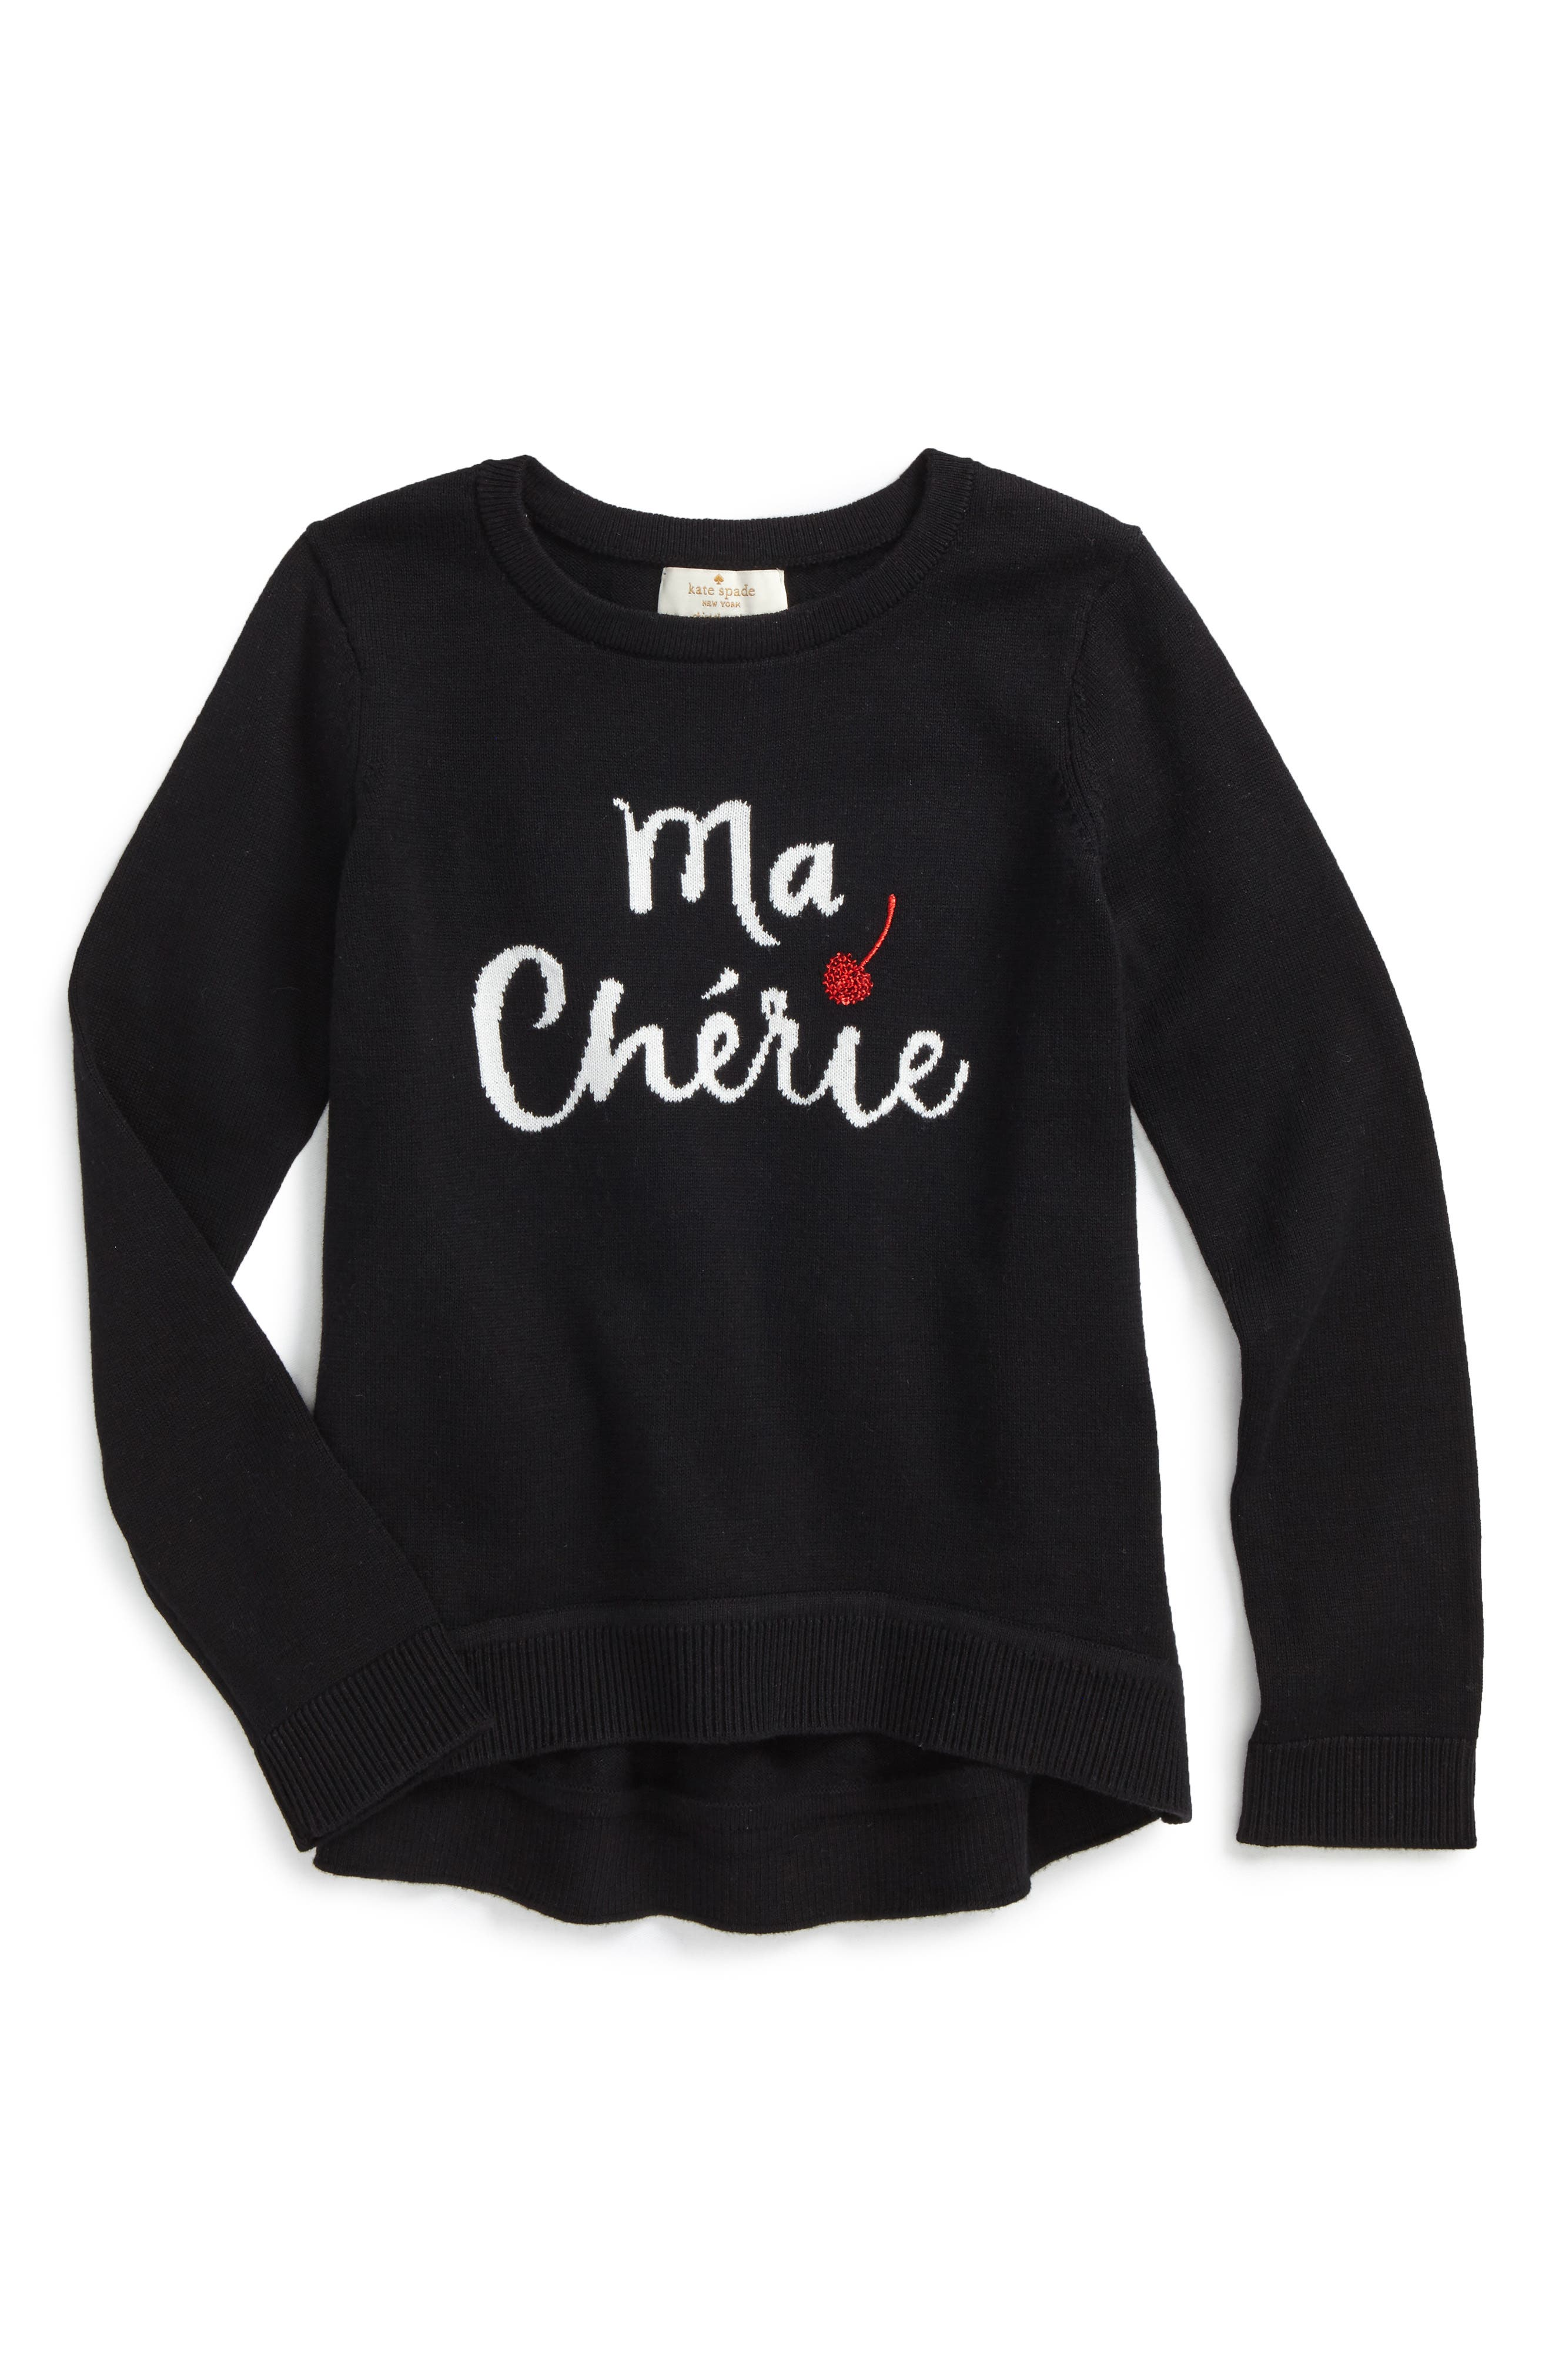 Alternate Image 1 Selected - kate spade new york ma chérie cotton sweater (Toddler Girls & Little Girls)